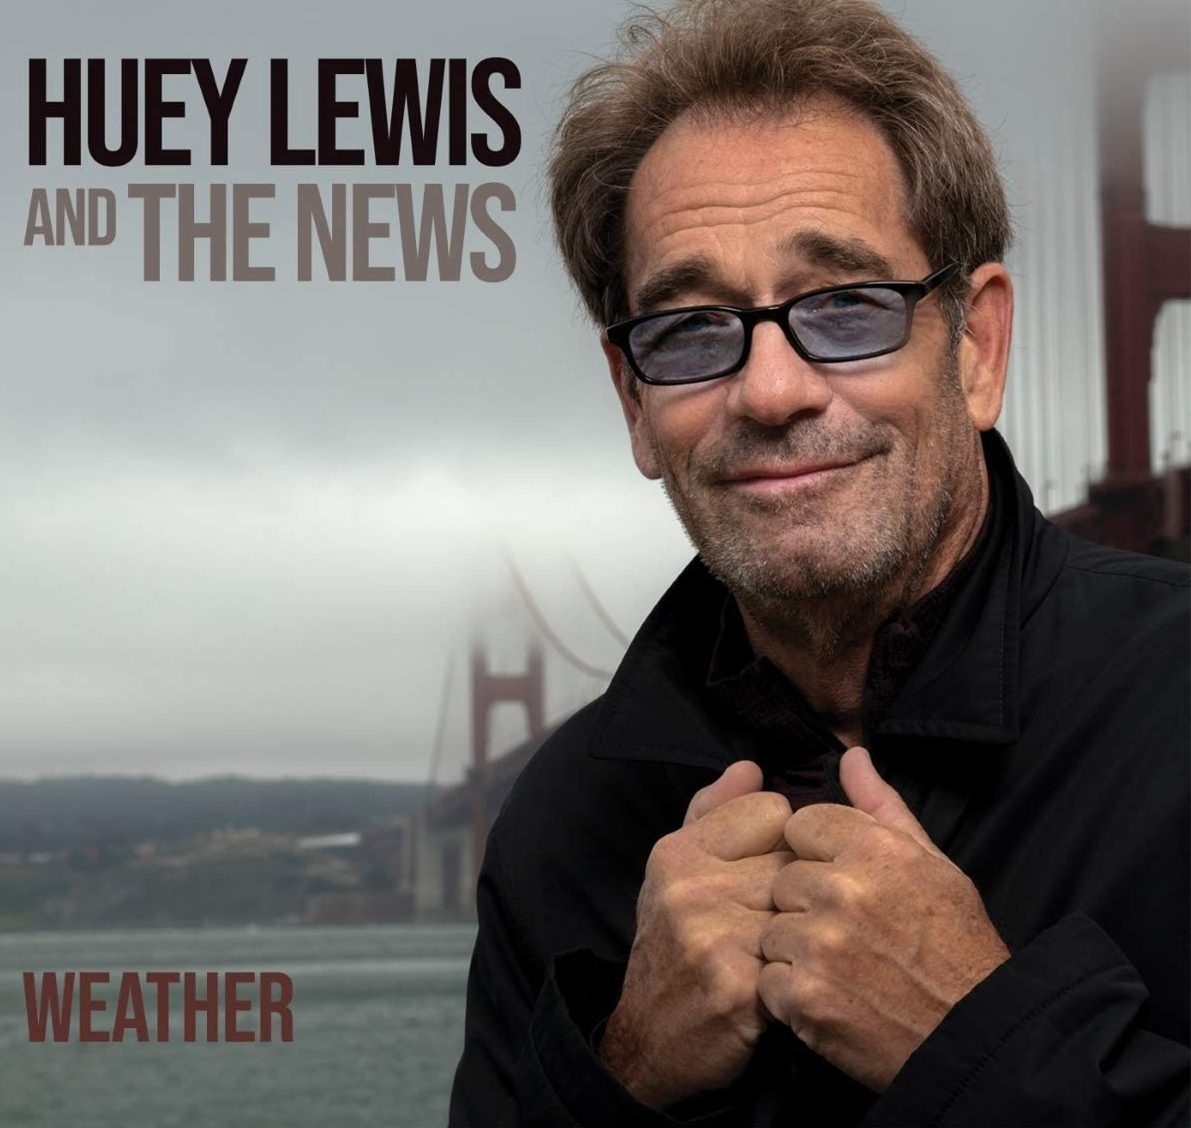 6104AI1HjqL. AC SL1200 e1625838916350 20 Things You Might Not Have Known About Huey Lewis and the News